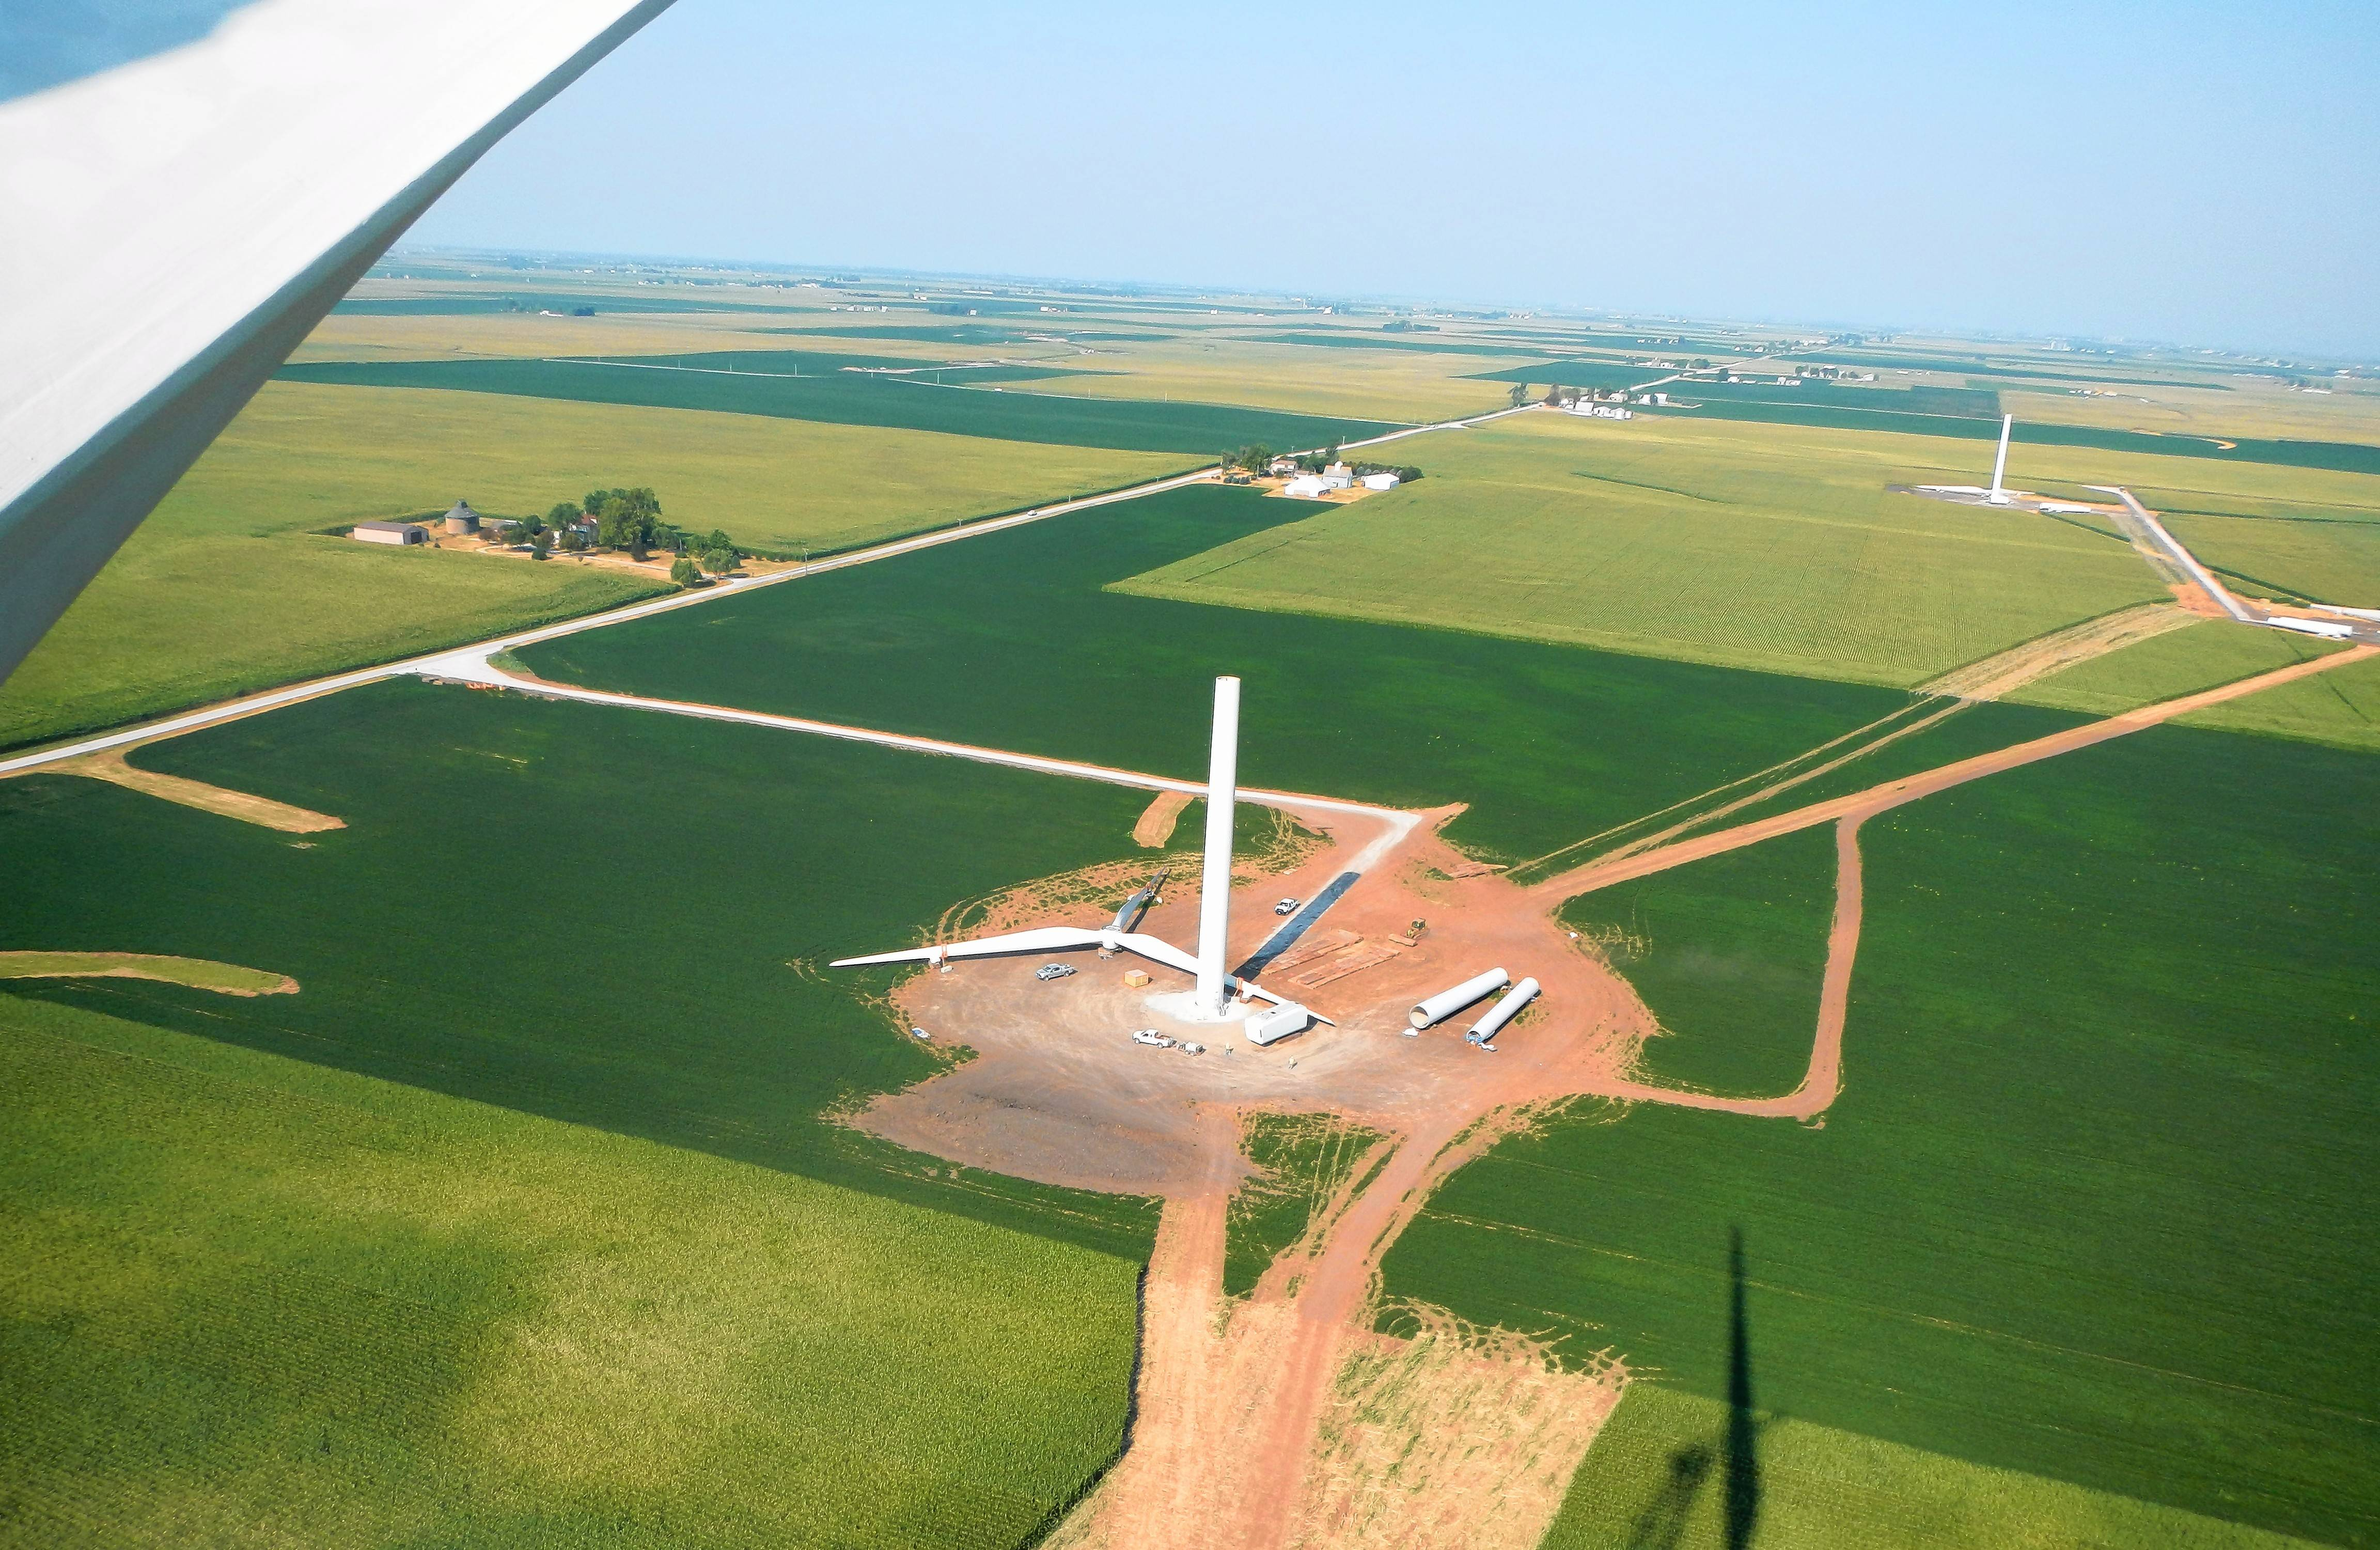 Mortenson, with offices in Itasca, recently added three new Illinois wind farm projects that will contribute an additional 289 MW of electricity to the state by the end of 2018 and an additional 194 MWs in 2019.